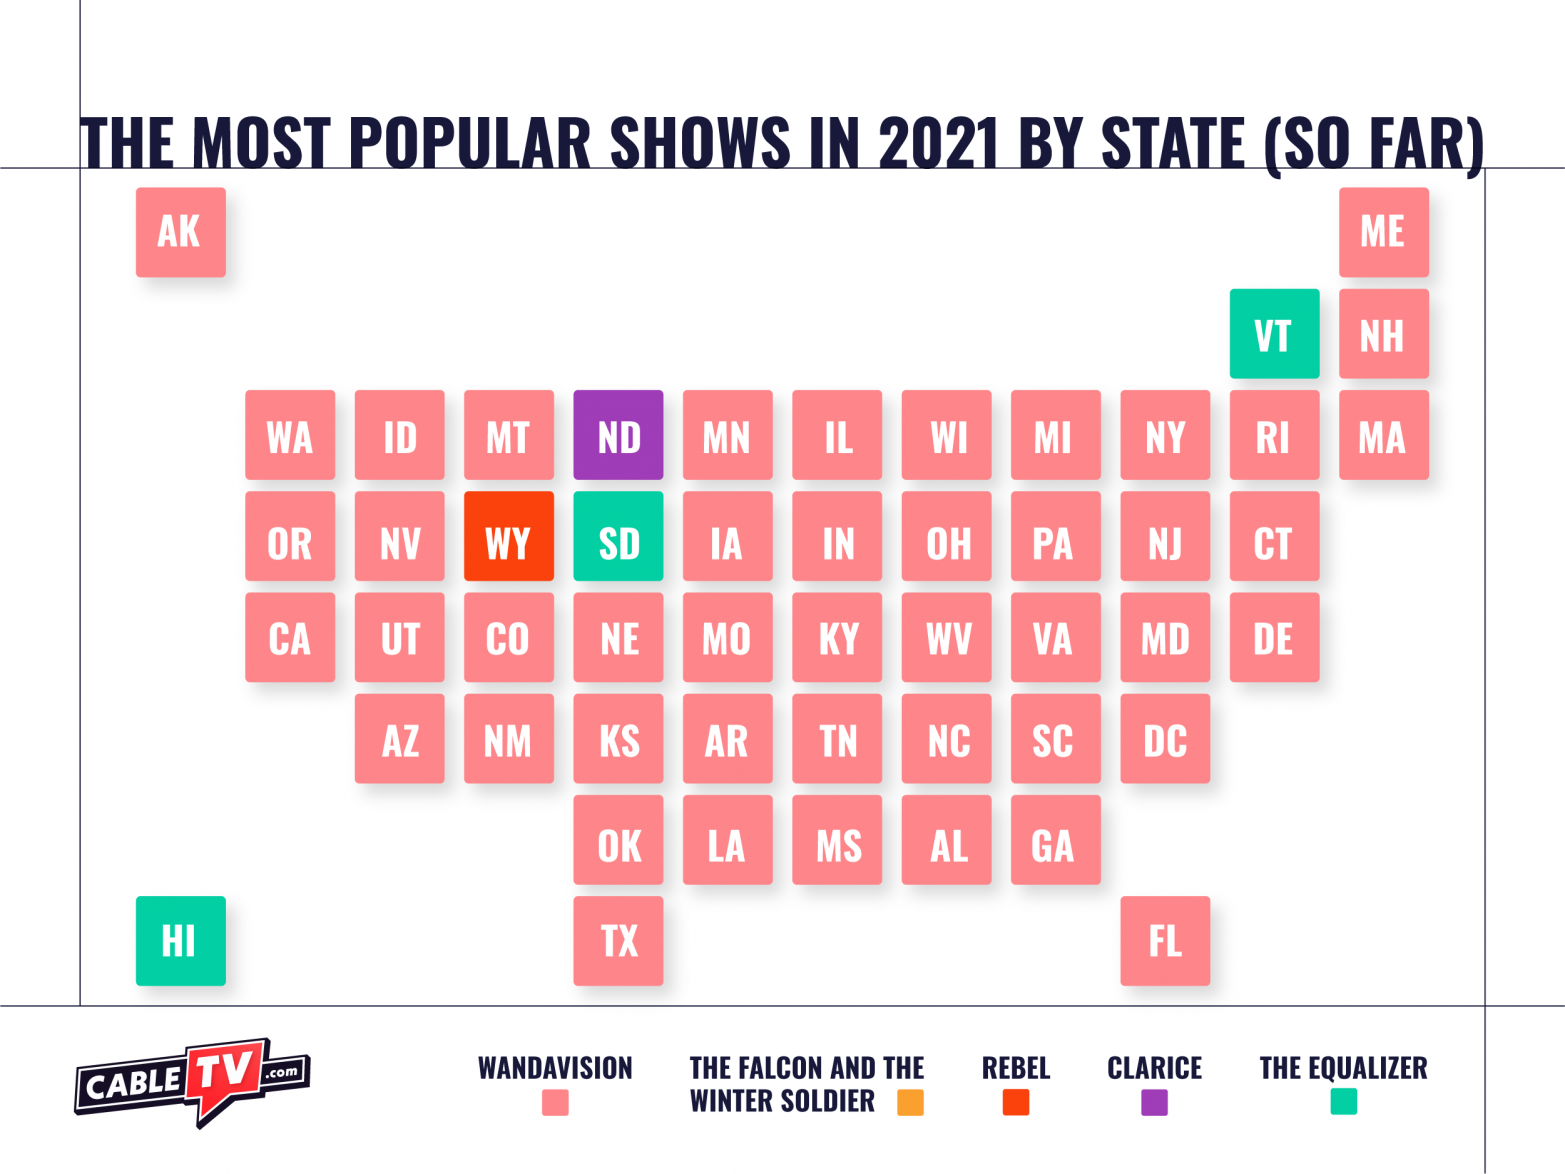 The Most Popular Shows in 2021